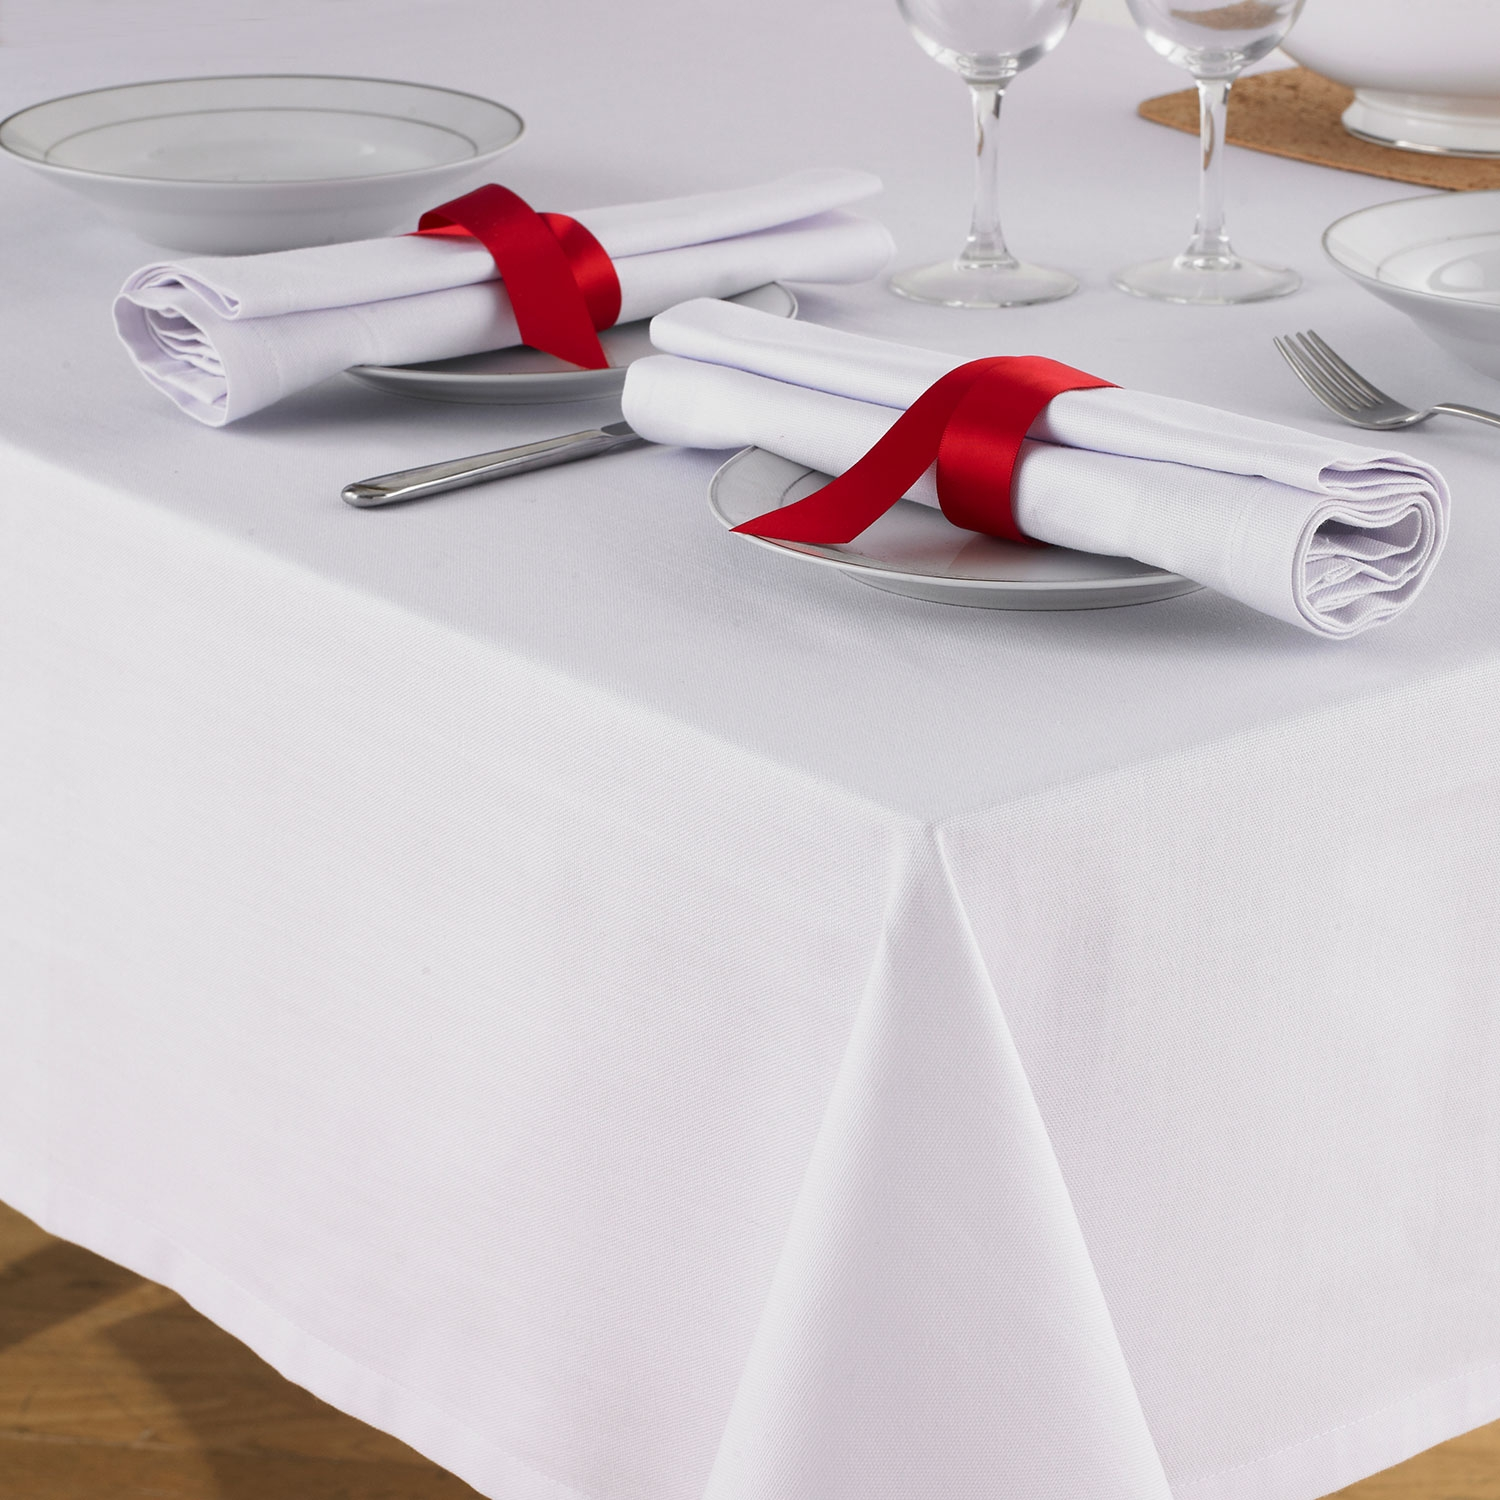 Table-cover_1.jpg